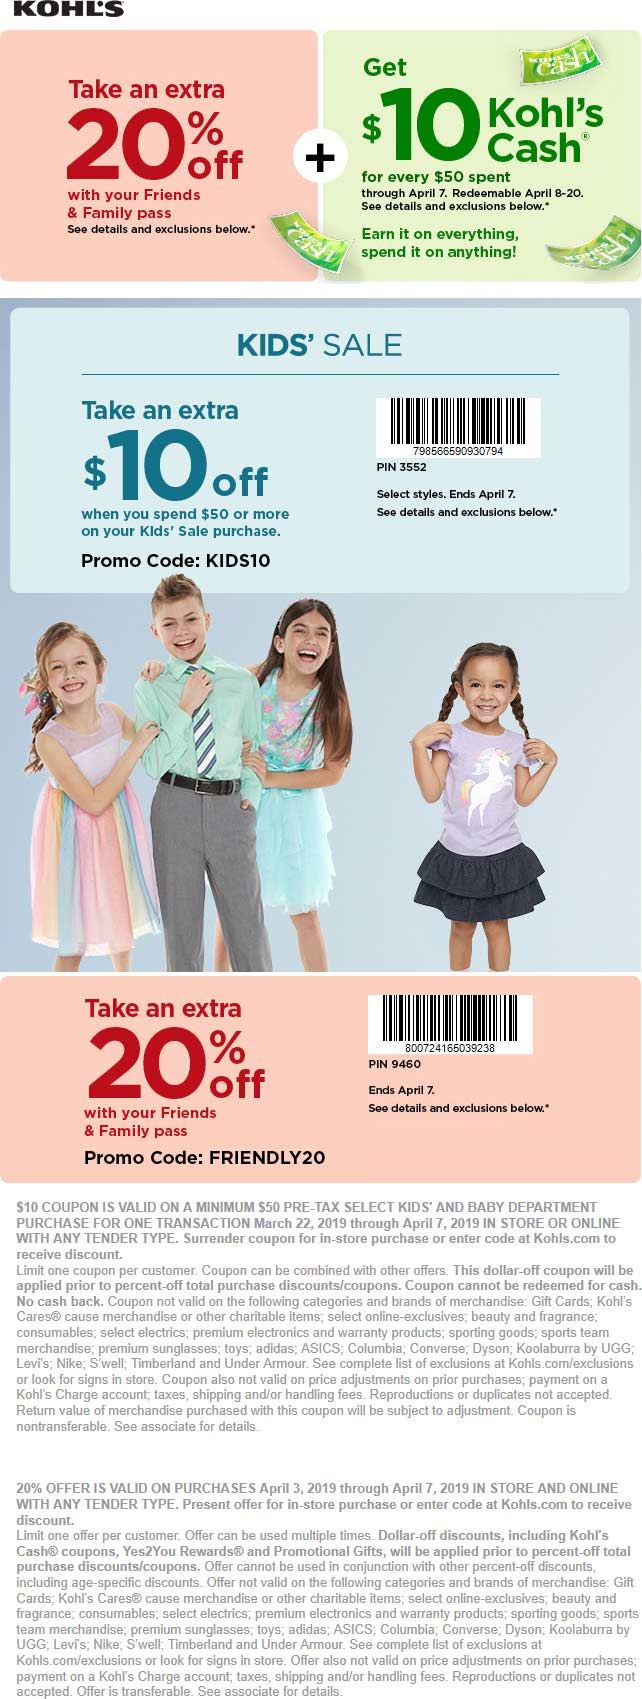 Kohls coupons & promo code for [October 2020]